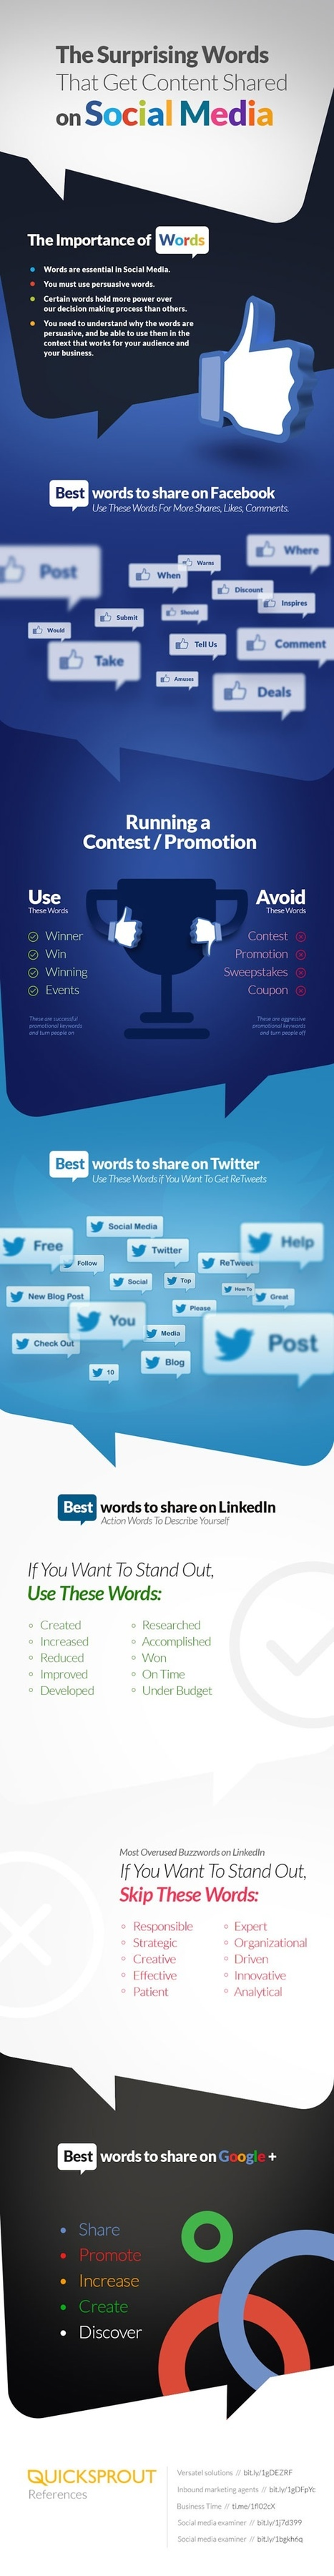 Infographic: Get More Social Media Traffic by Use These Surprising Words | You and Social Media | Scoop.it